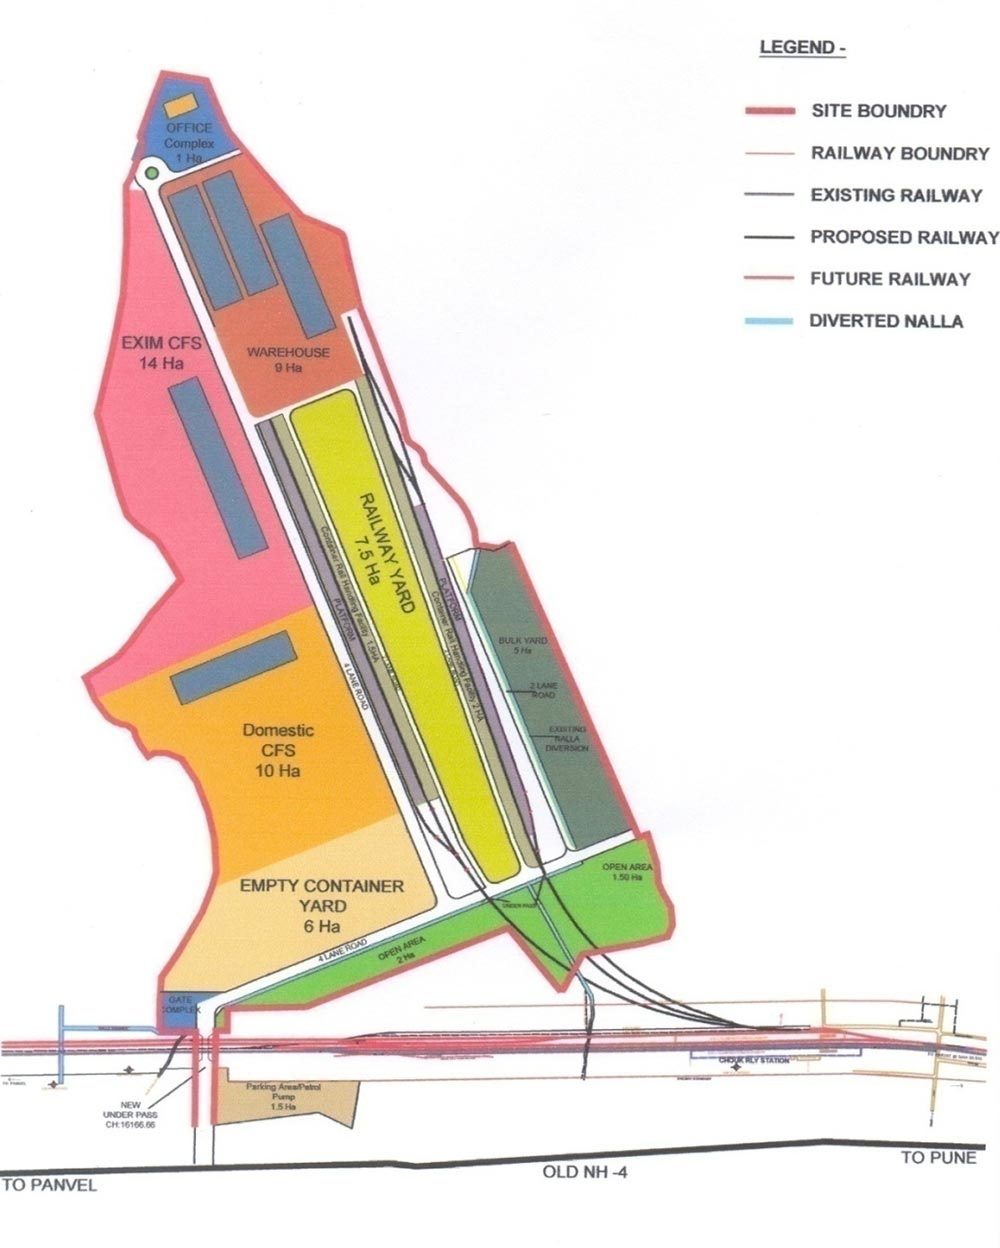 Master Plan for Peninsular Logistic Hub along Mumbai-Pune Highway at Chowk